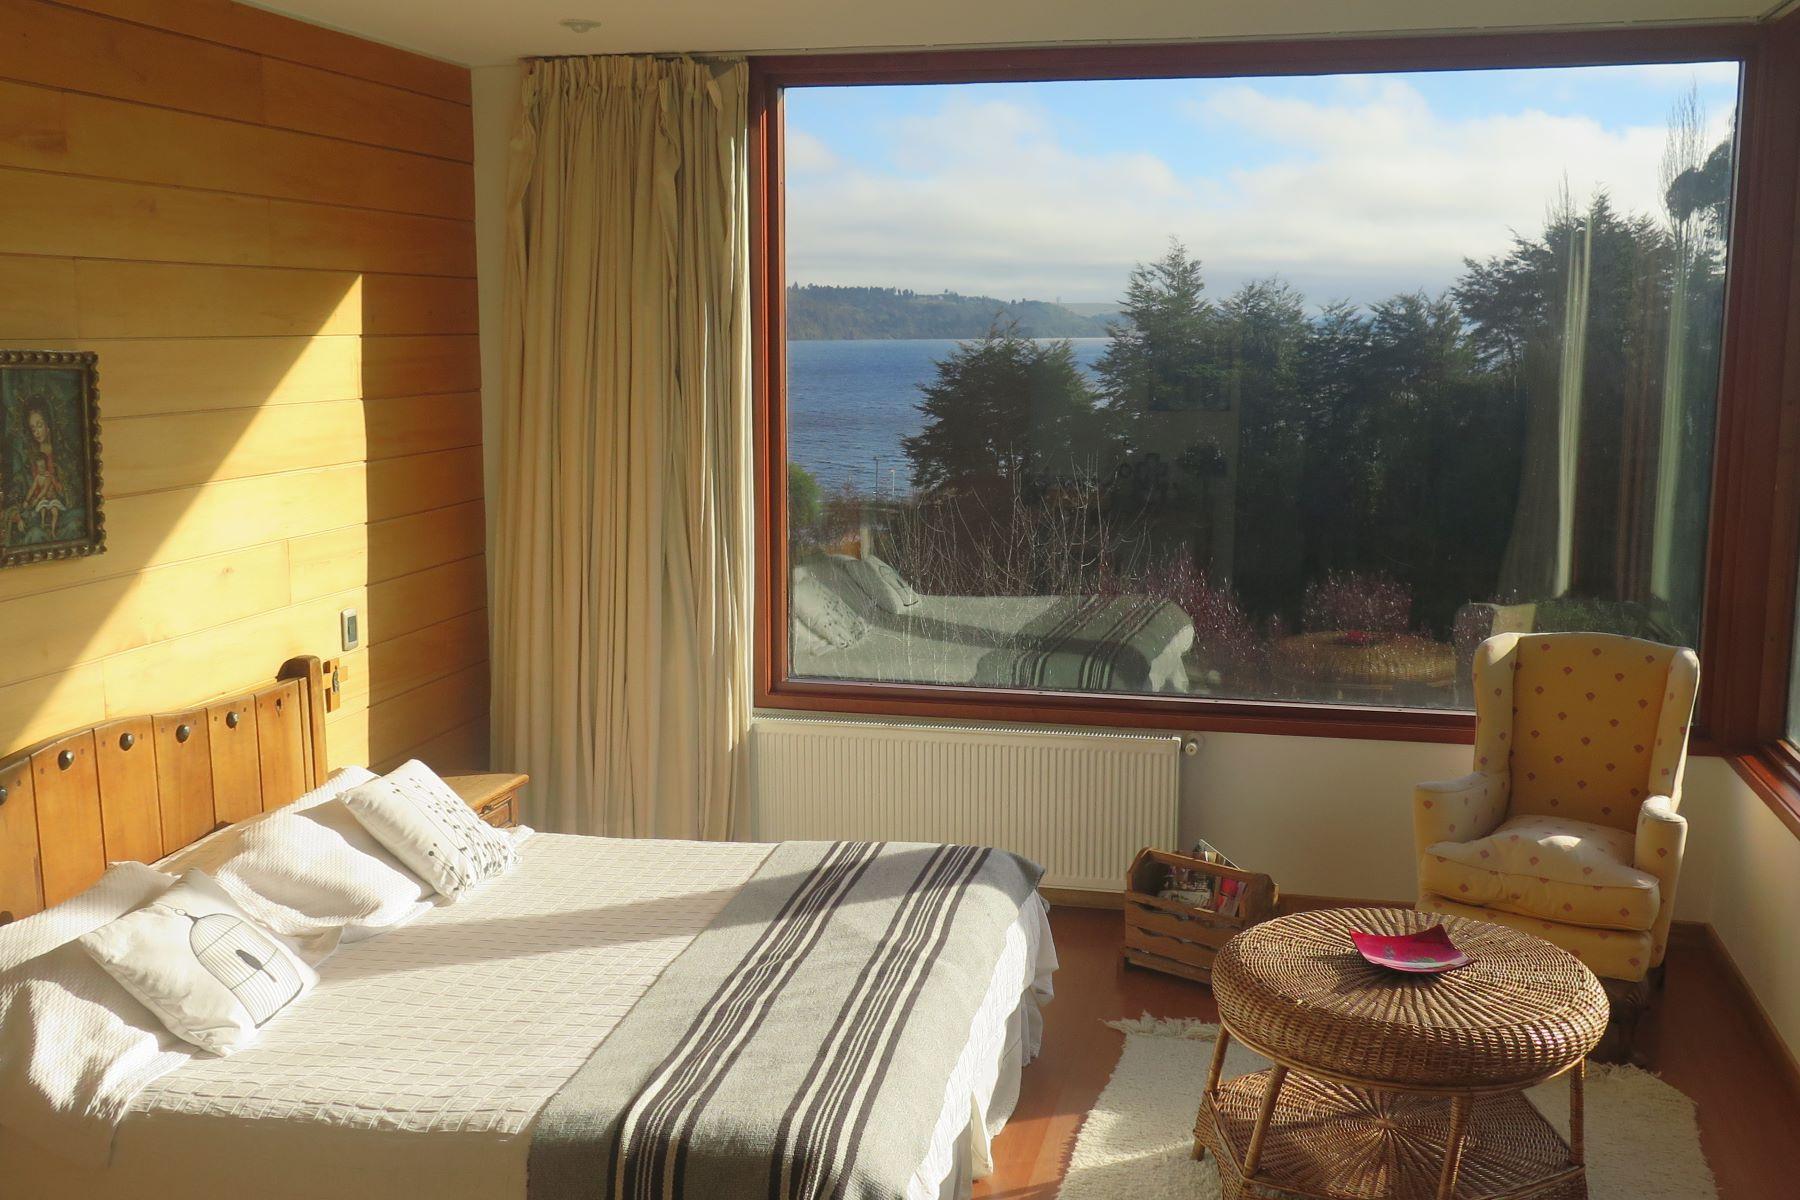 独户住宅 为 销售 在 Excellent Lakeside Home in Condominium With Marina Puerto Varas, Puerto Montt, Los Lagos 智利